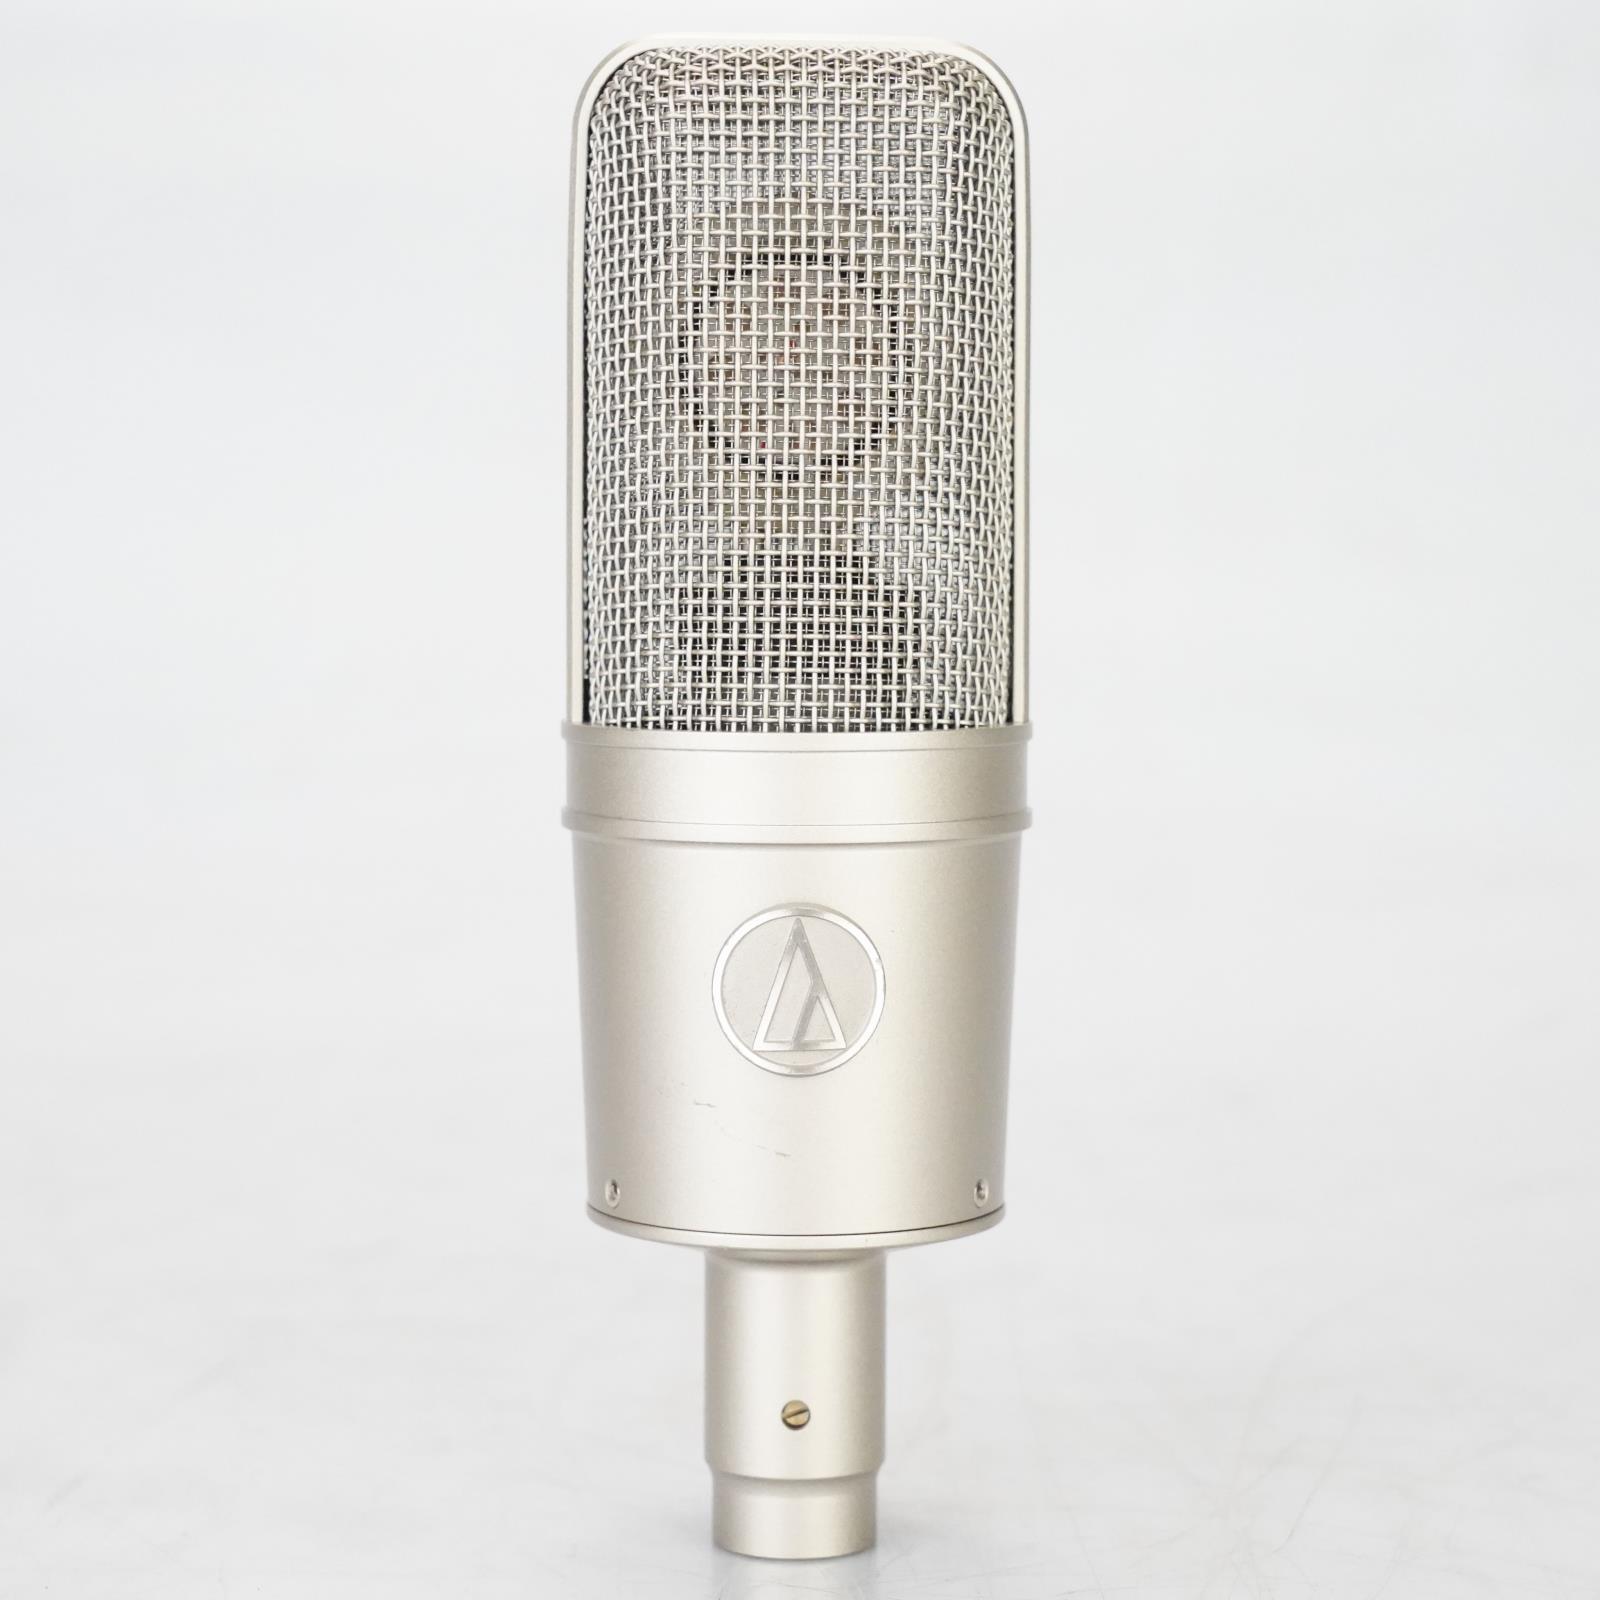 Audio Technica AT4047/SV Cardioid Condenser Microphone Ed Cherney #39021